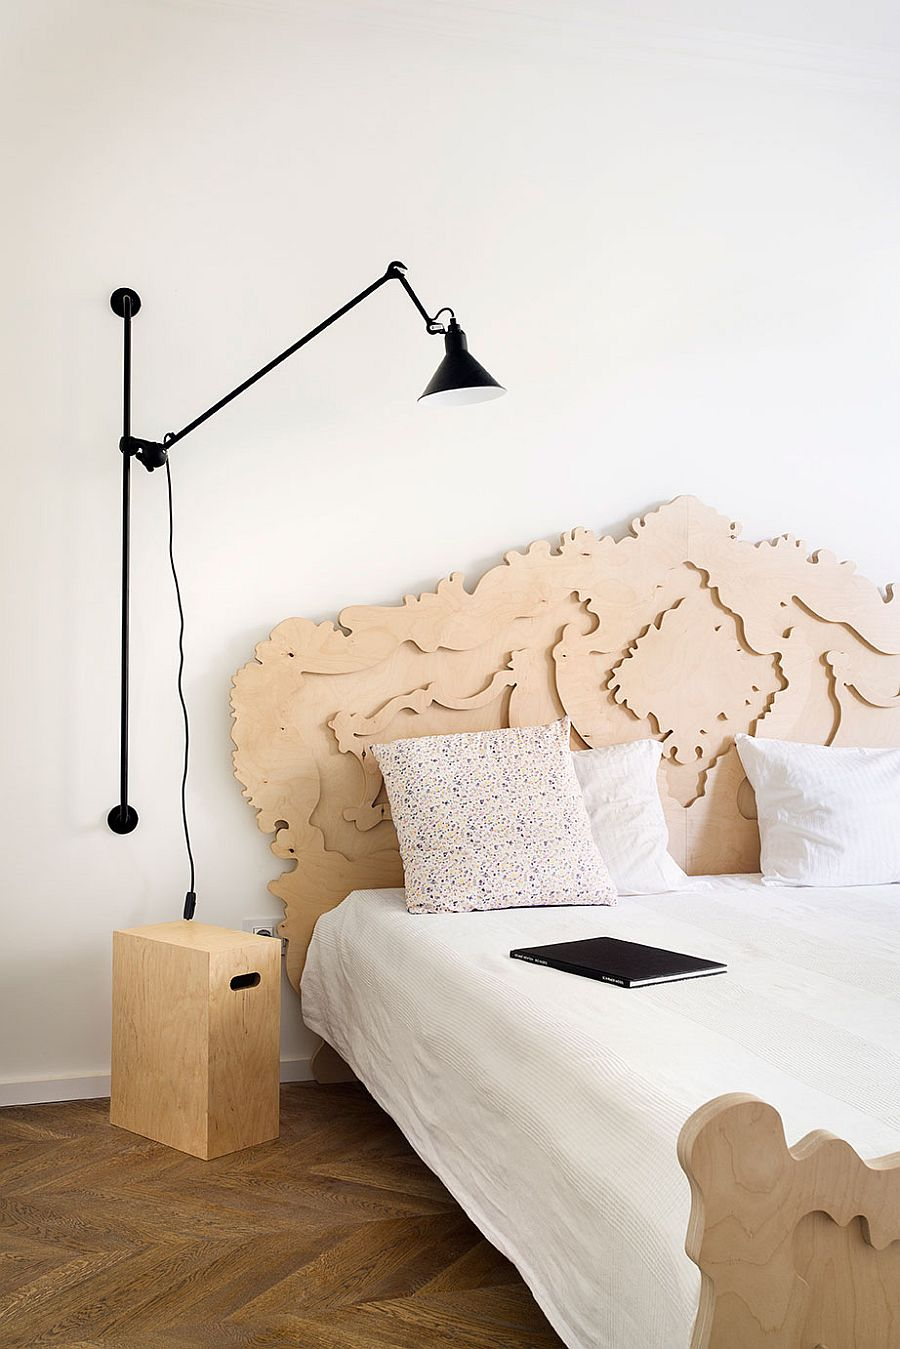 Sconce lighting fixture used as space-saving bedside light